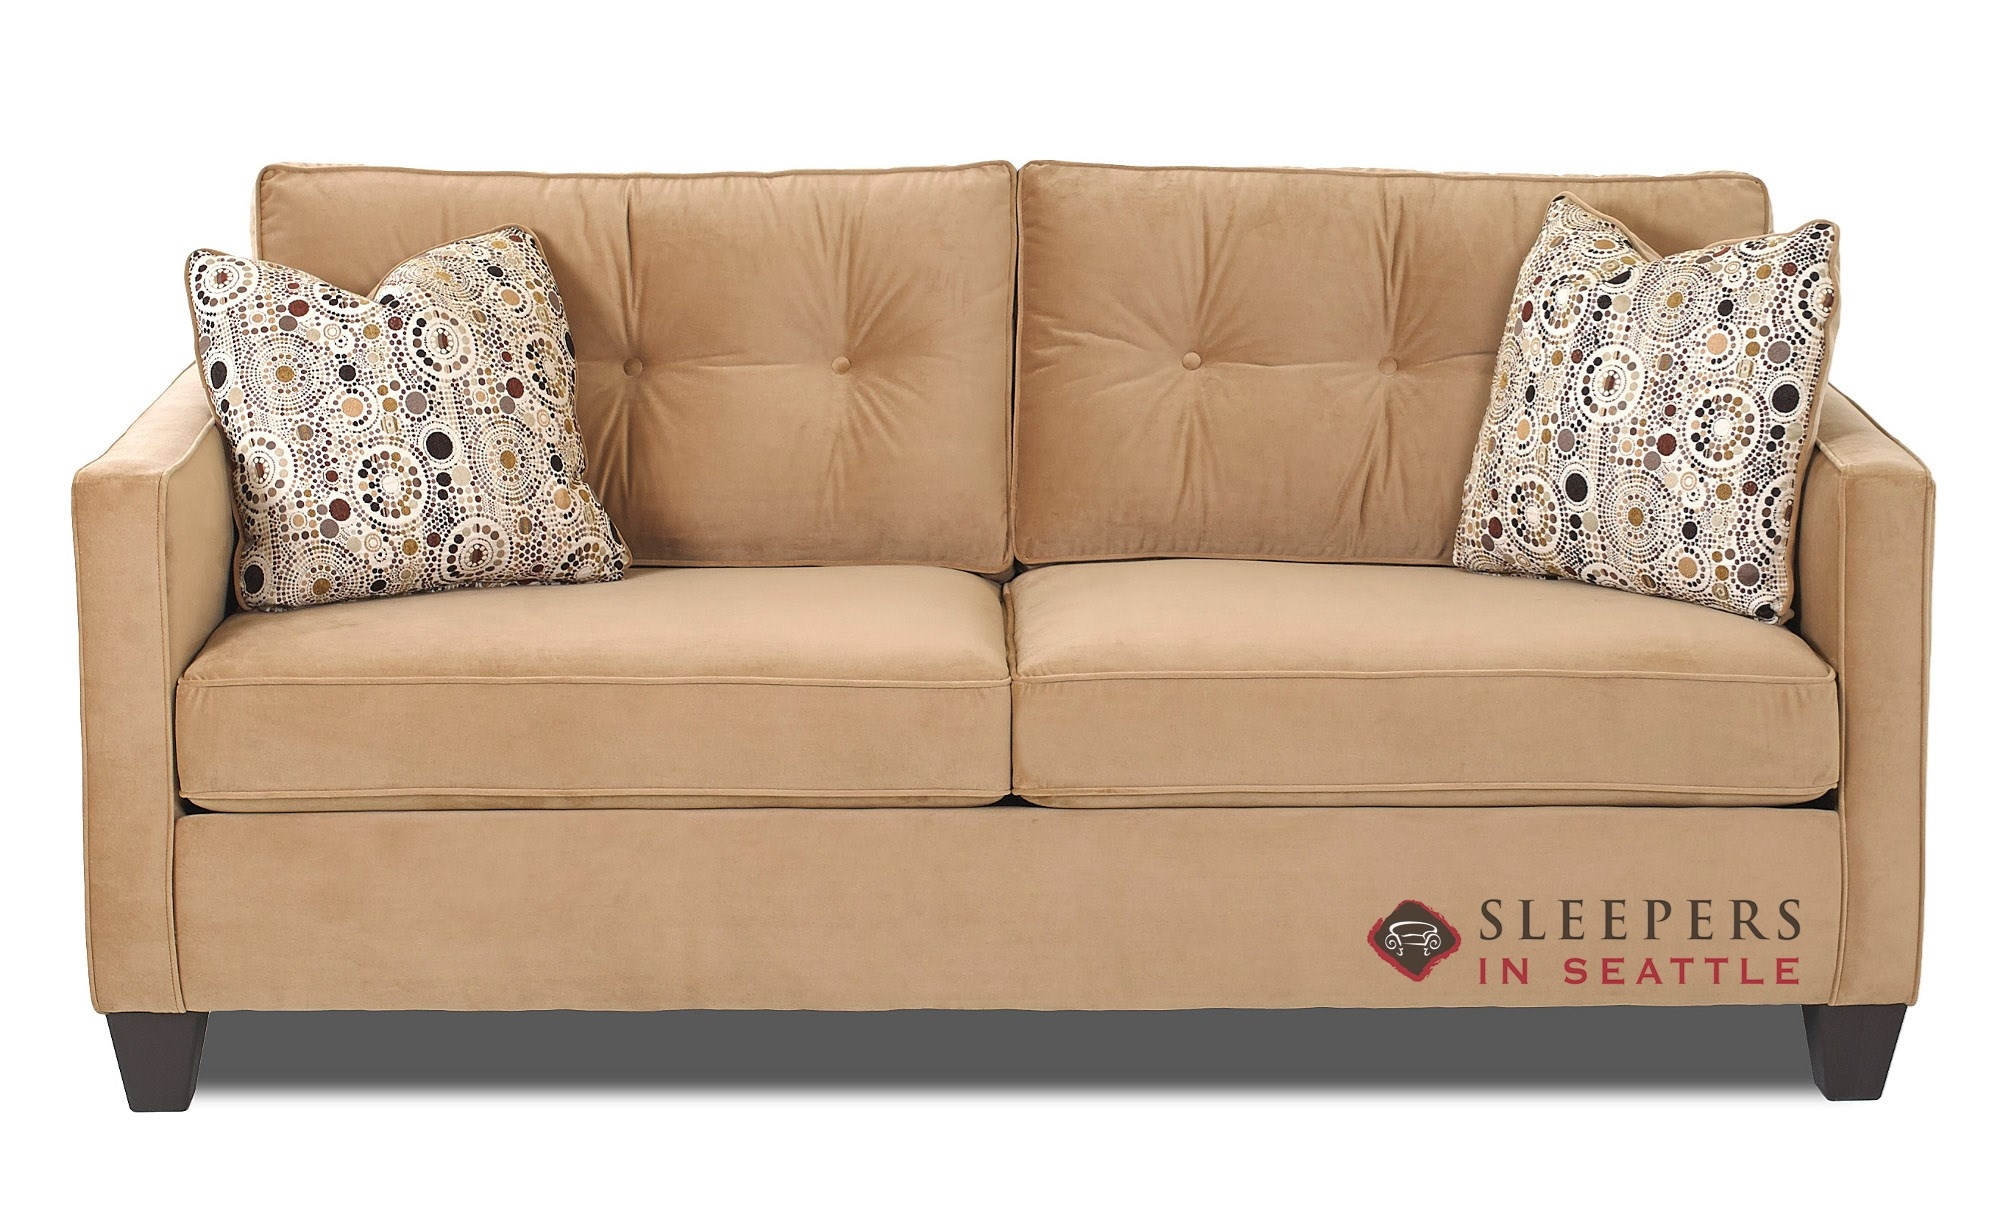 Sofa Queen Savvy Bristol Queen Sleeper Sofa